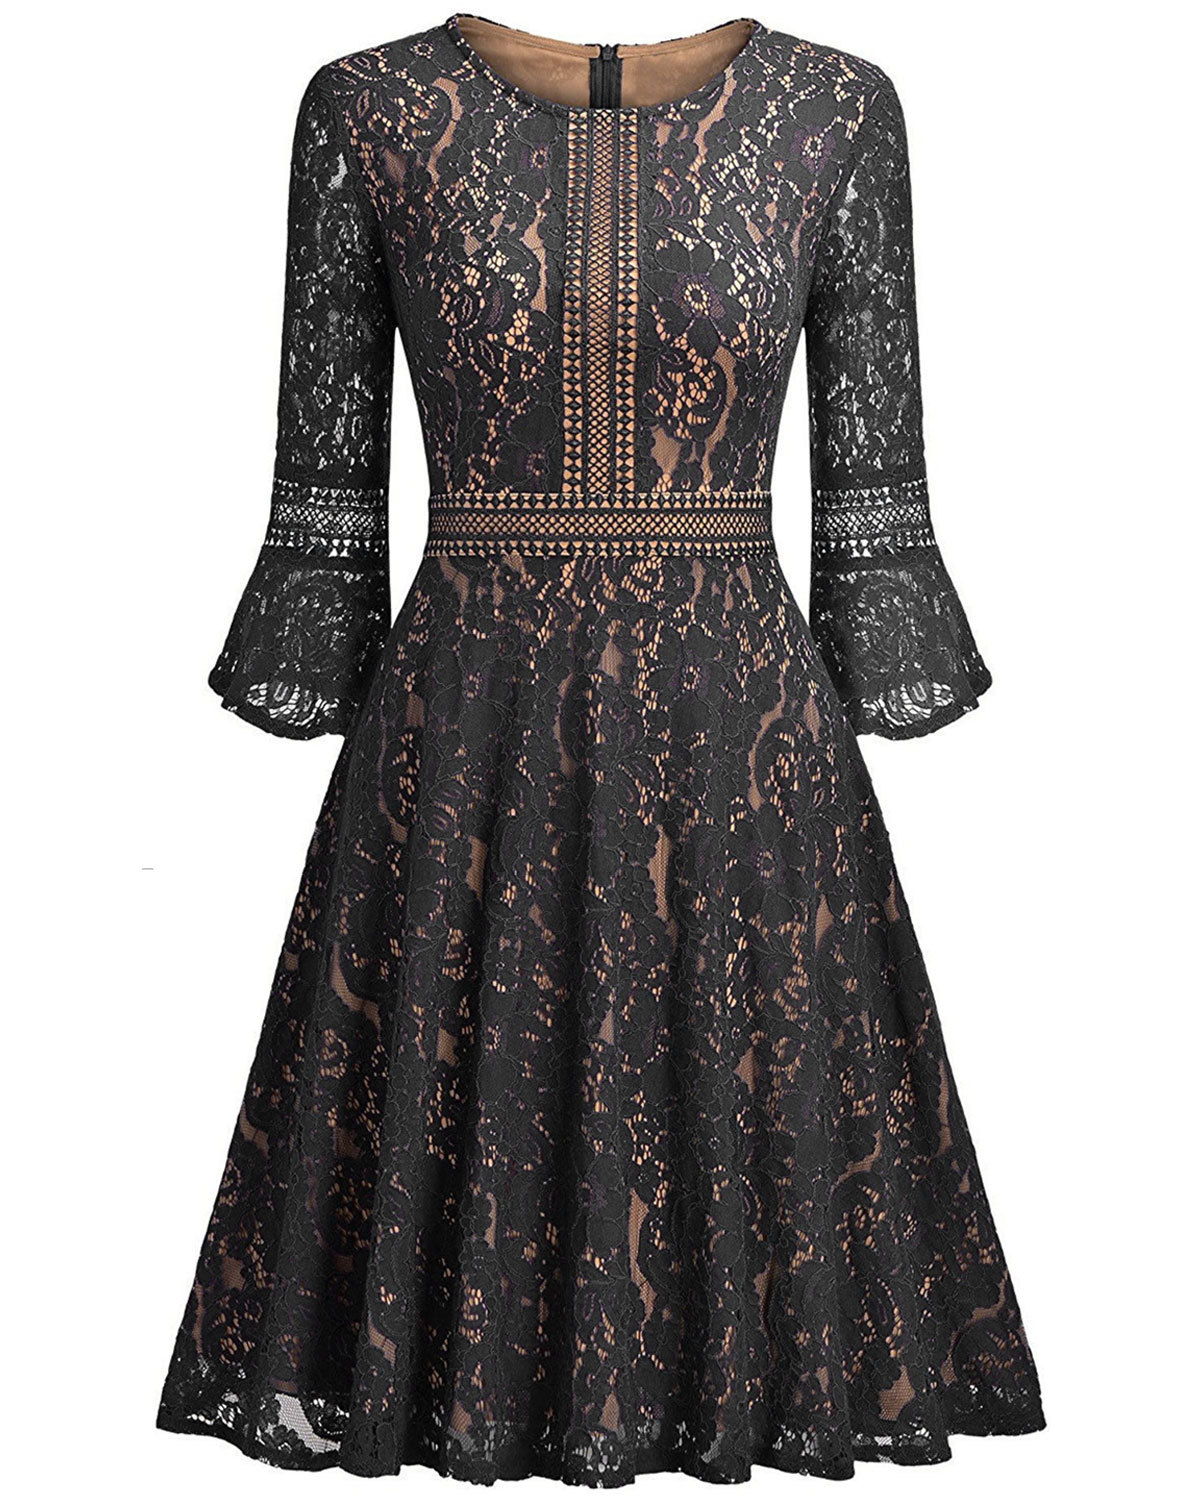 05f07a65b67 Vintage Floral Lace Dress Casual Women 3 4 Flare Sleeve Short Cocktail  Evening Party Wear